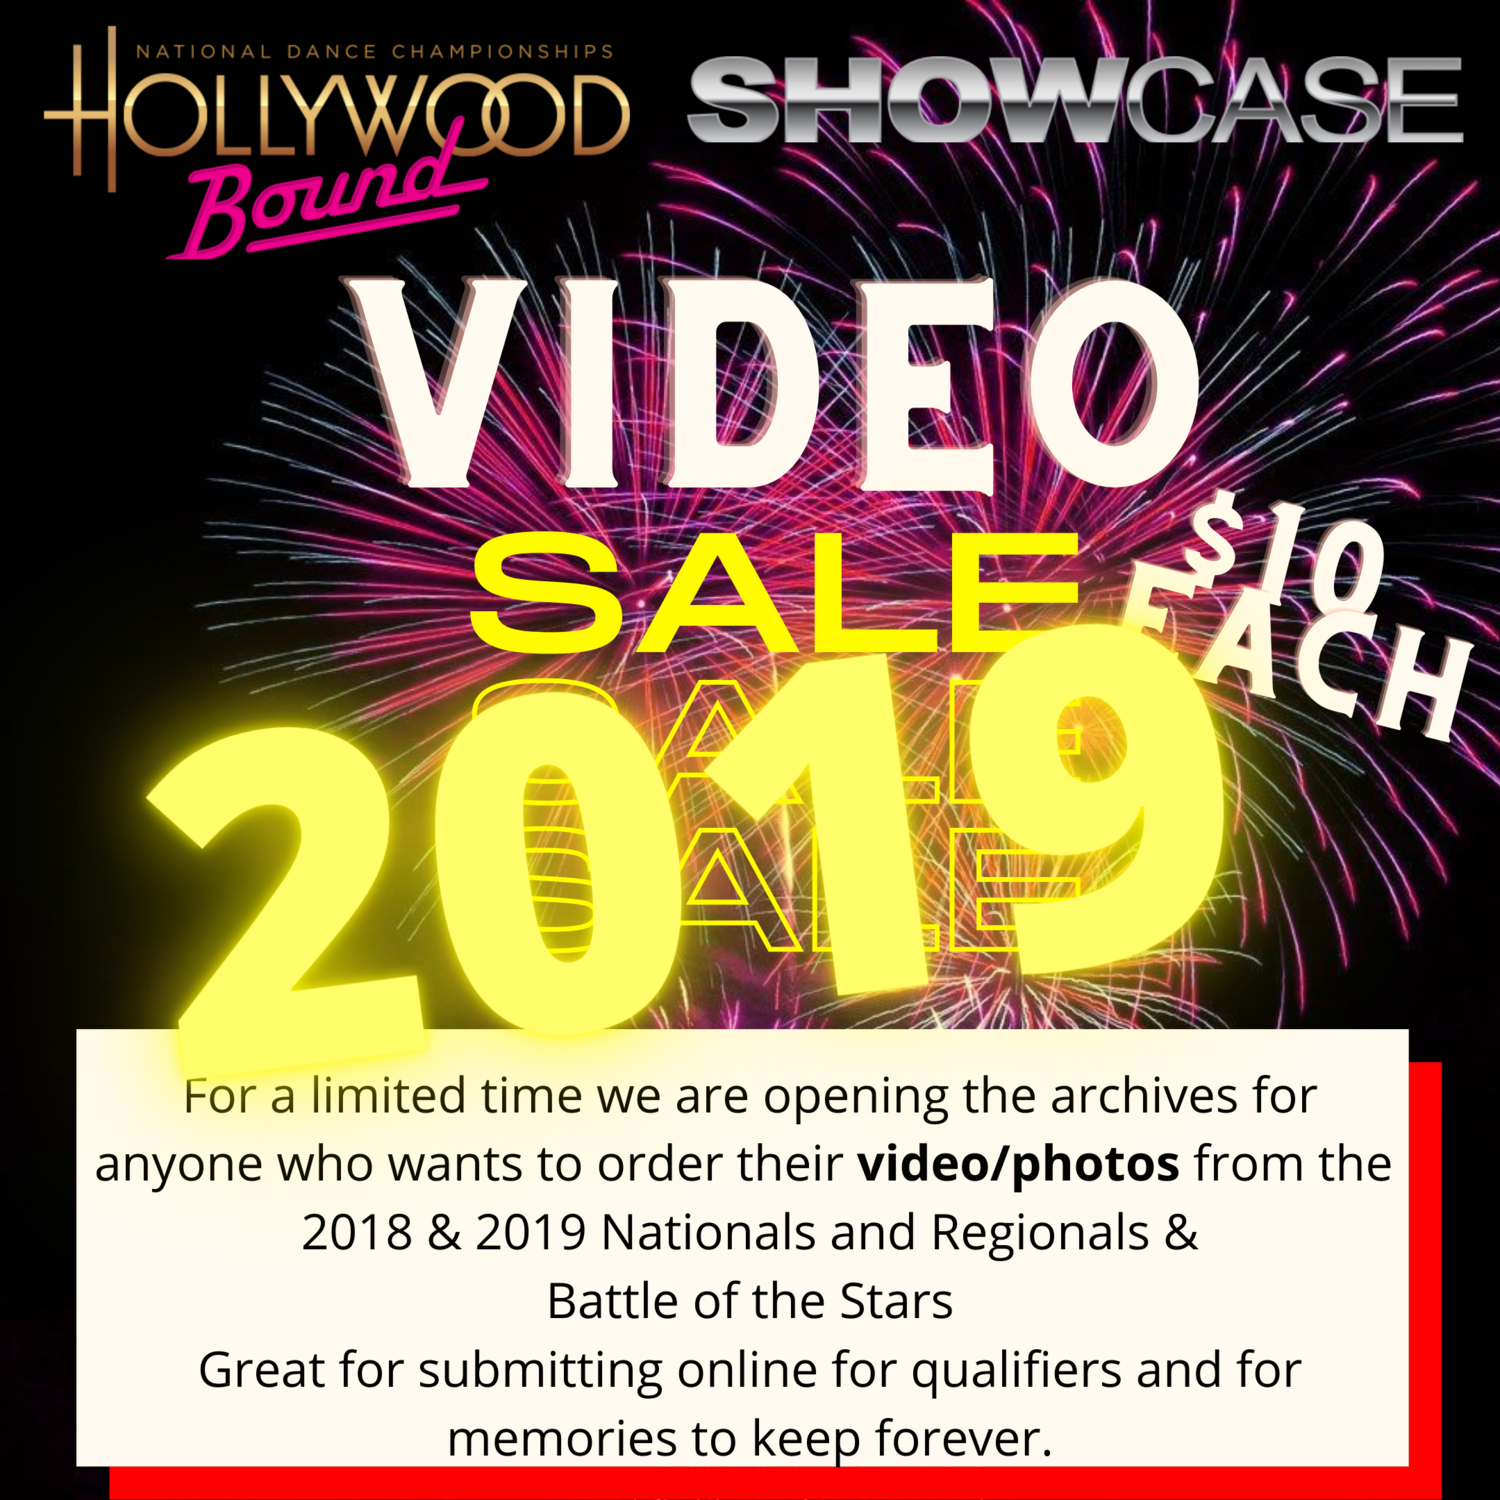 Video orders 2019 events only